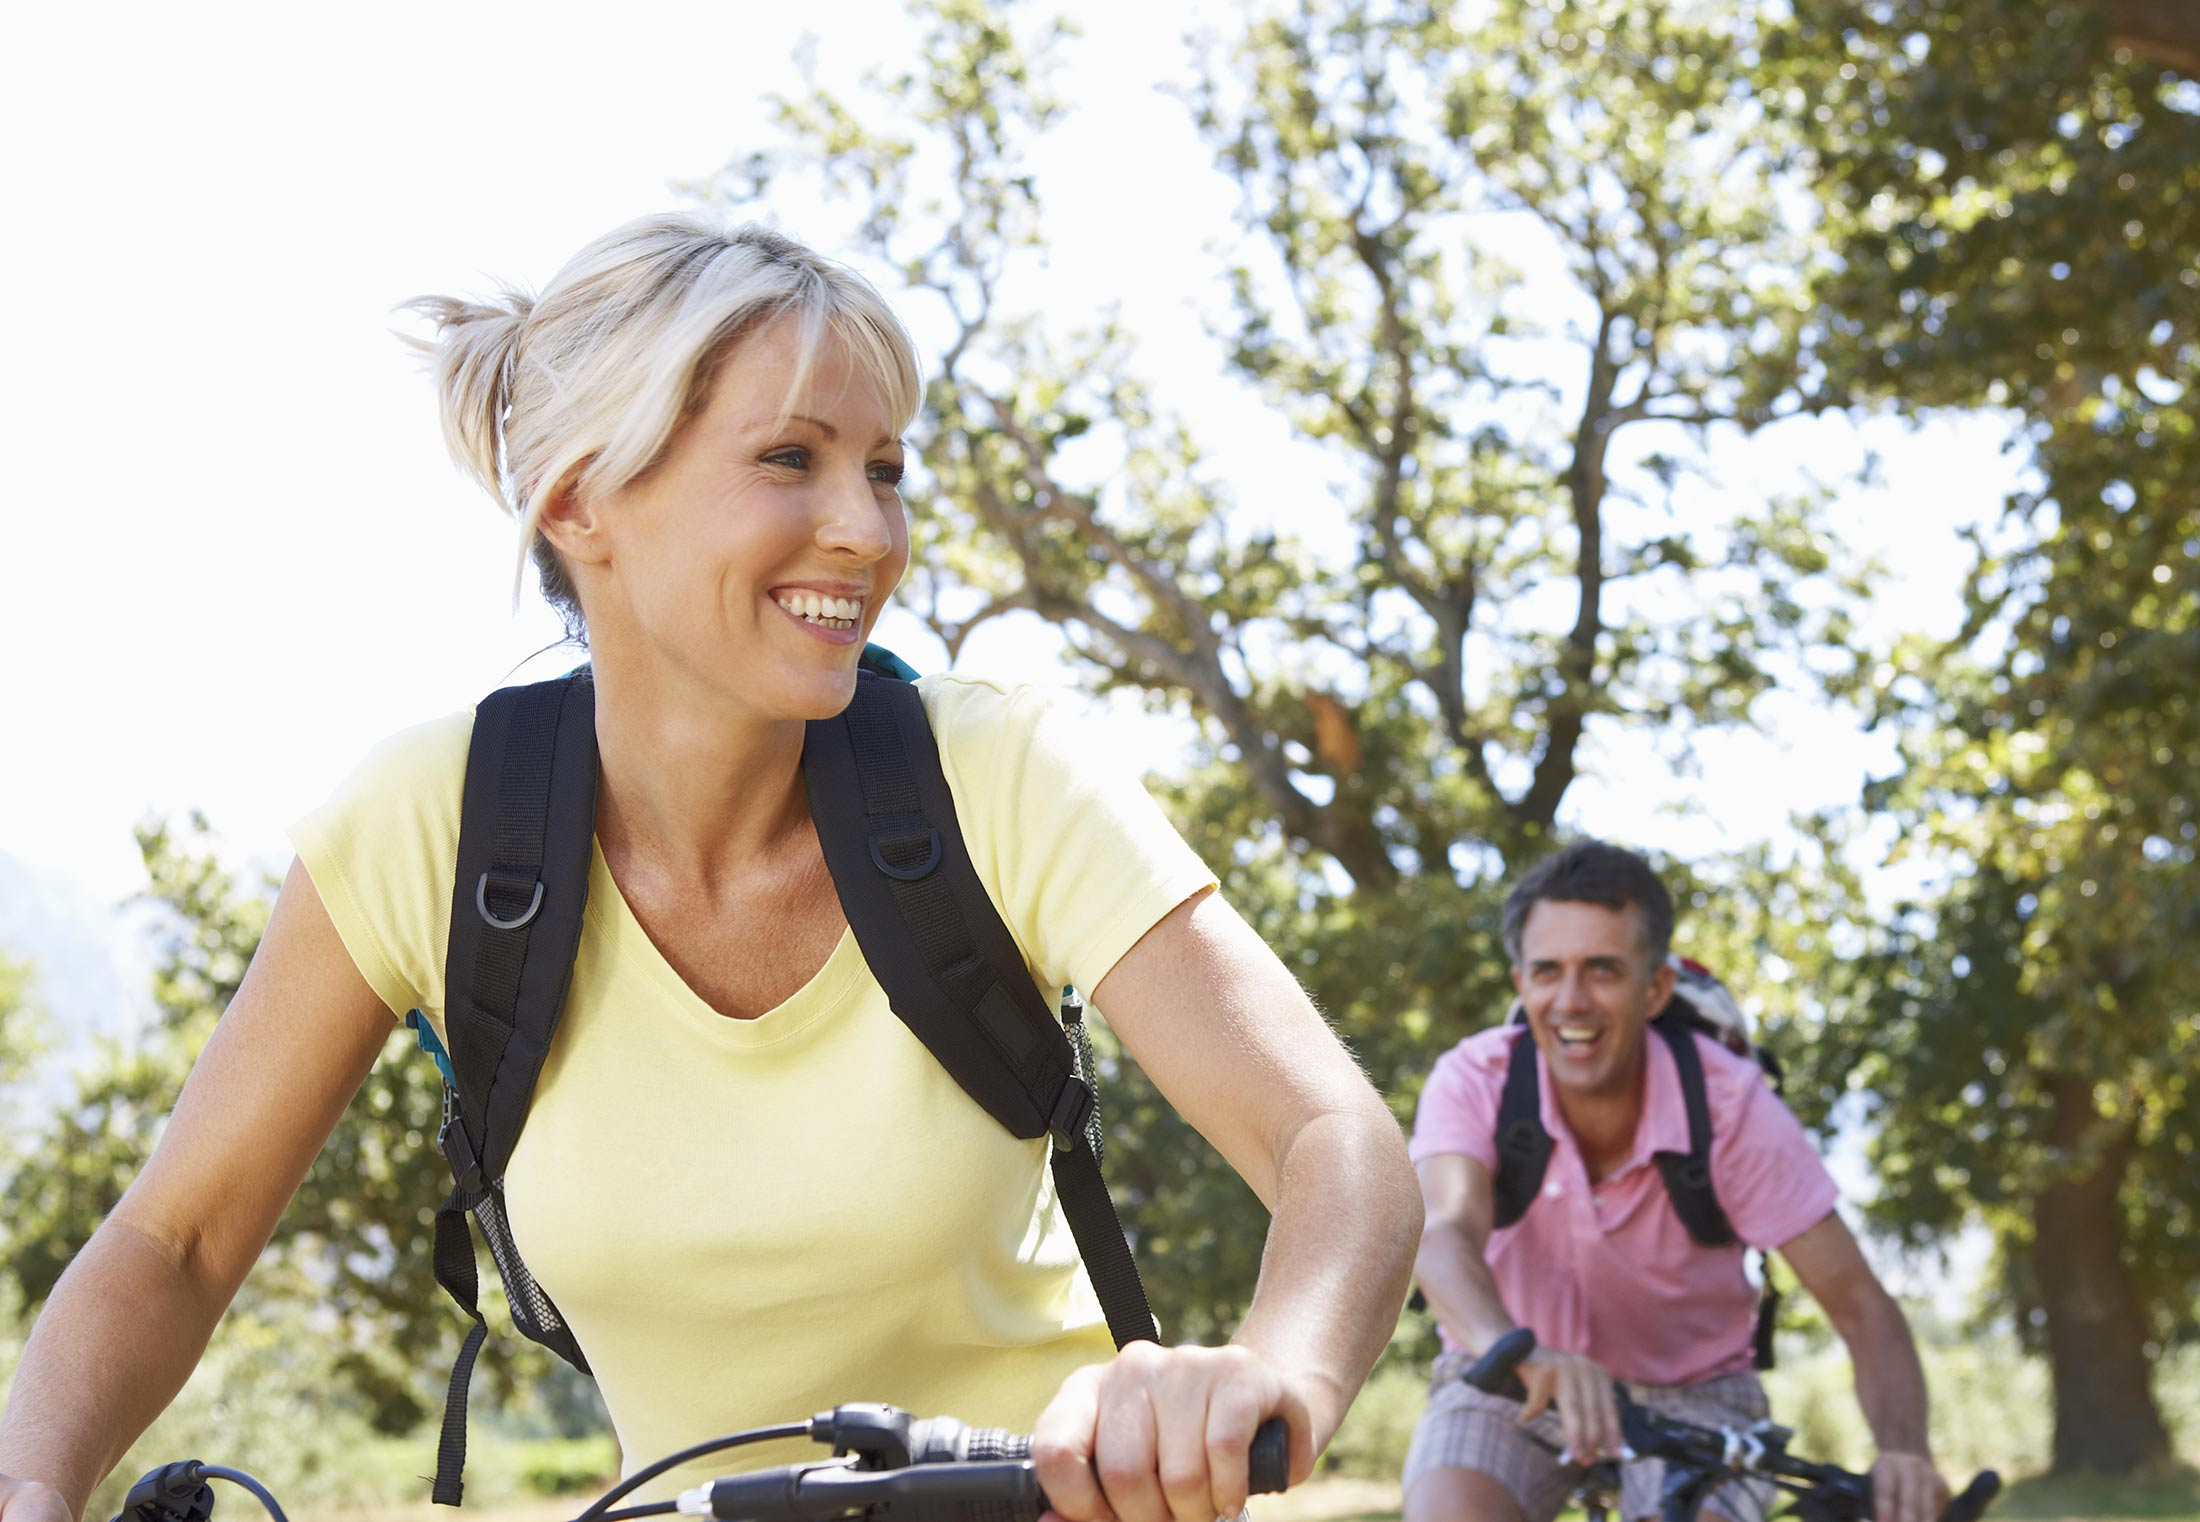 Man and woman biking after seeing denture specialists